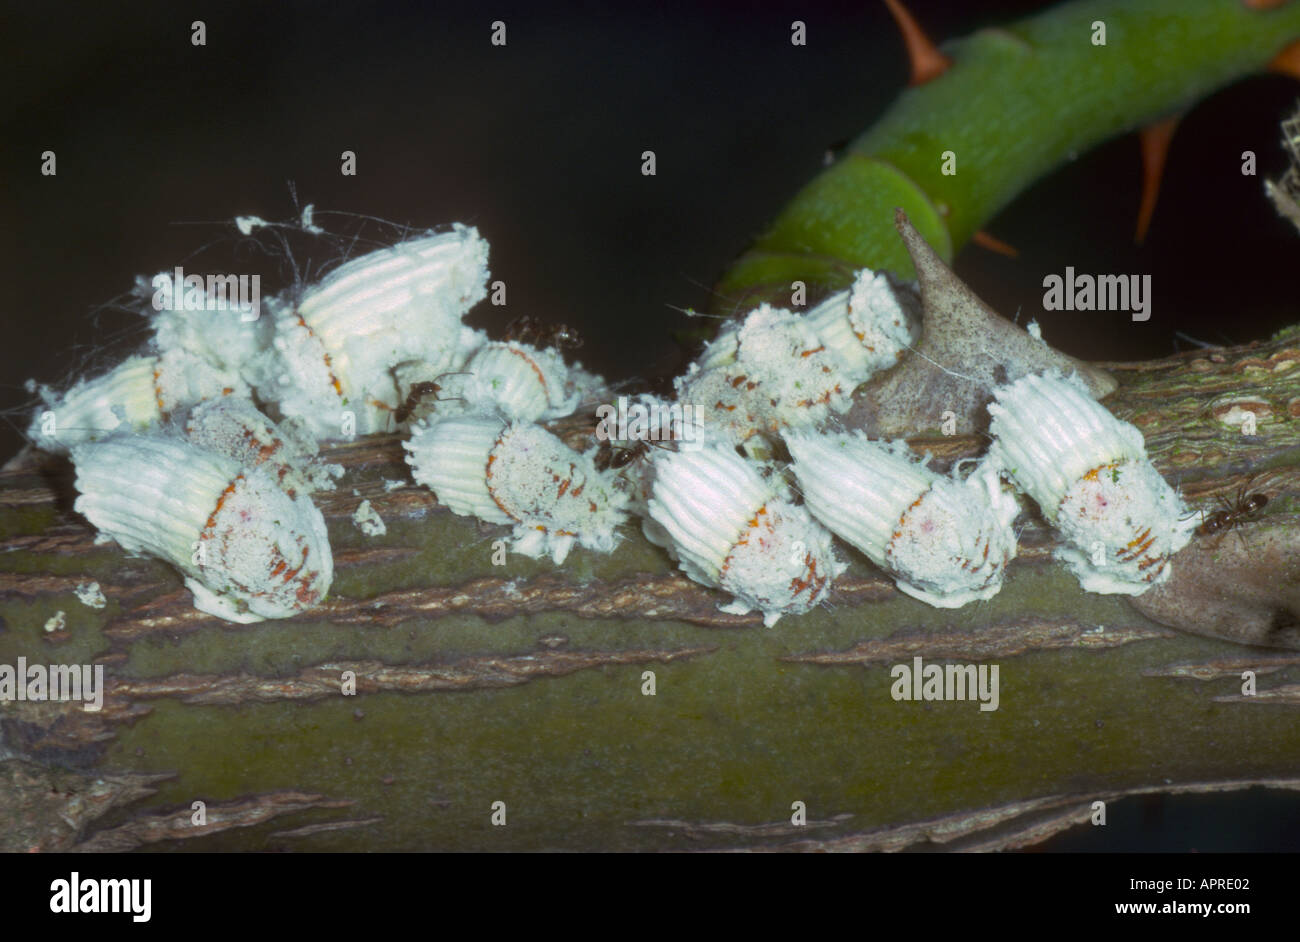 Scale Insects Icerya Purchasi Colony On Rose Stem Stock Photo